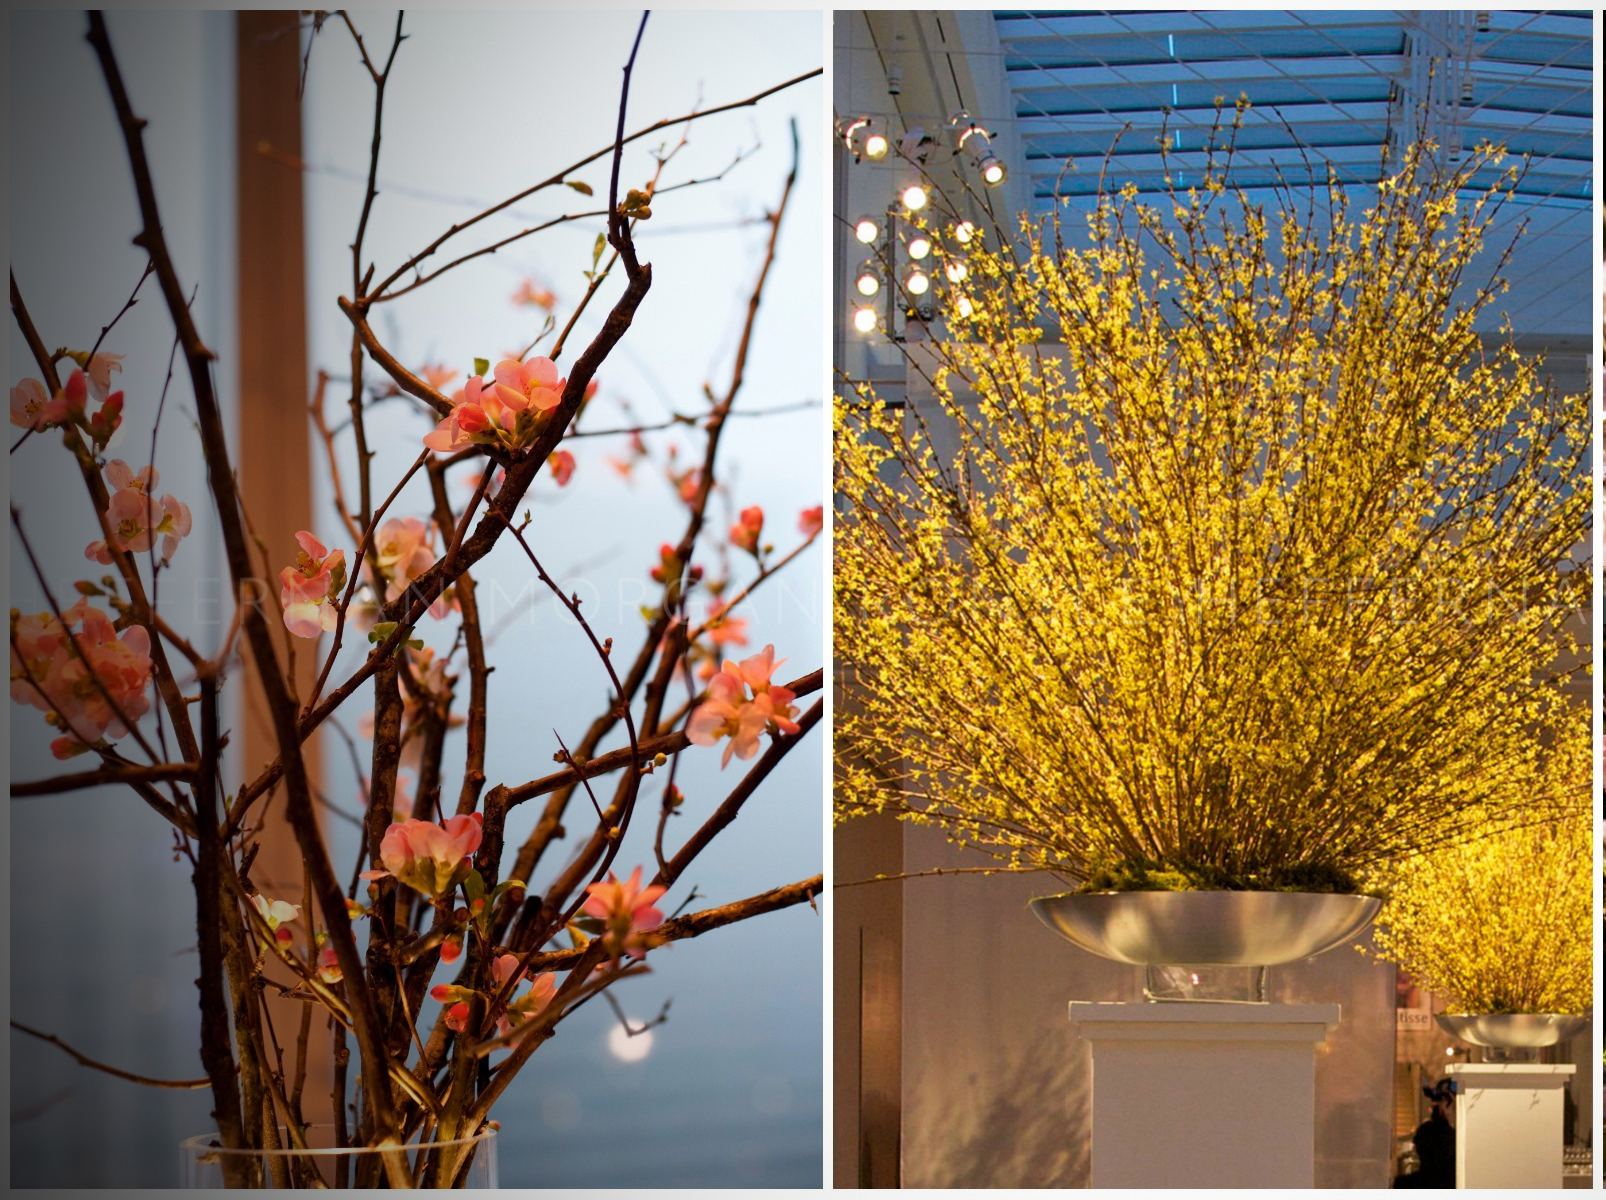 HMR Designs says to buy blooming branches like quince or forsythia to brighten the season.